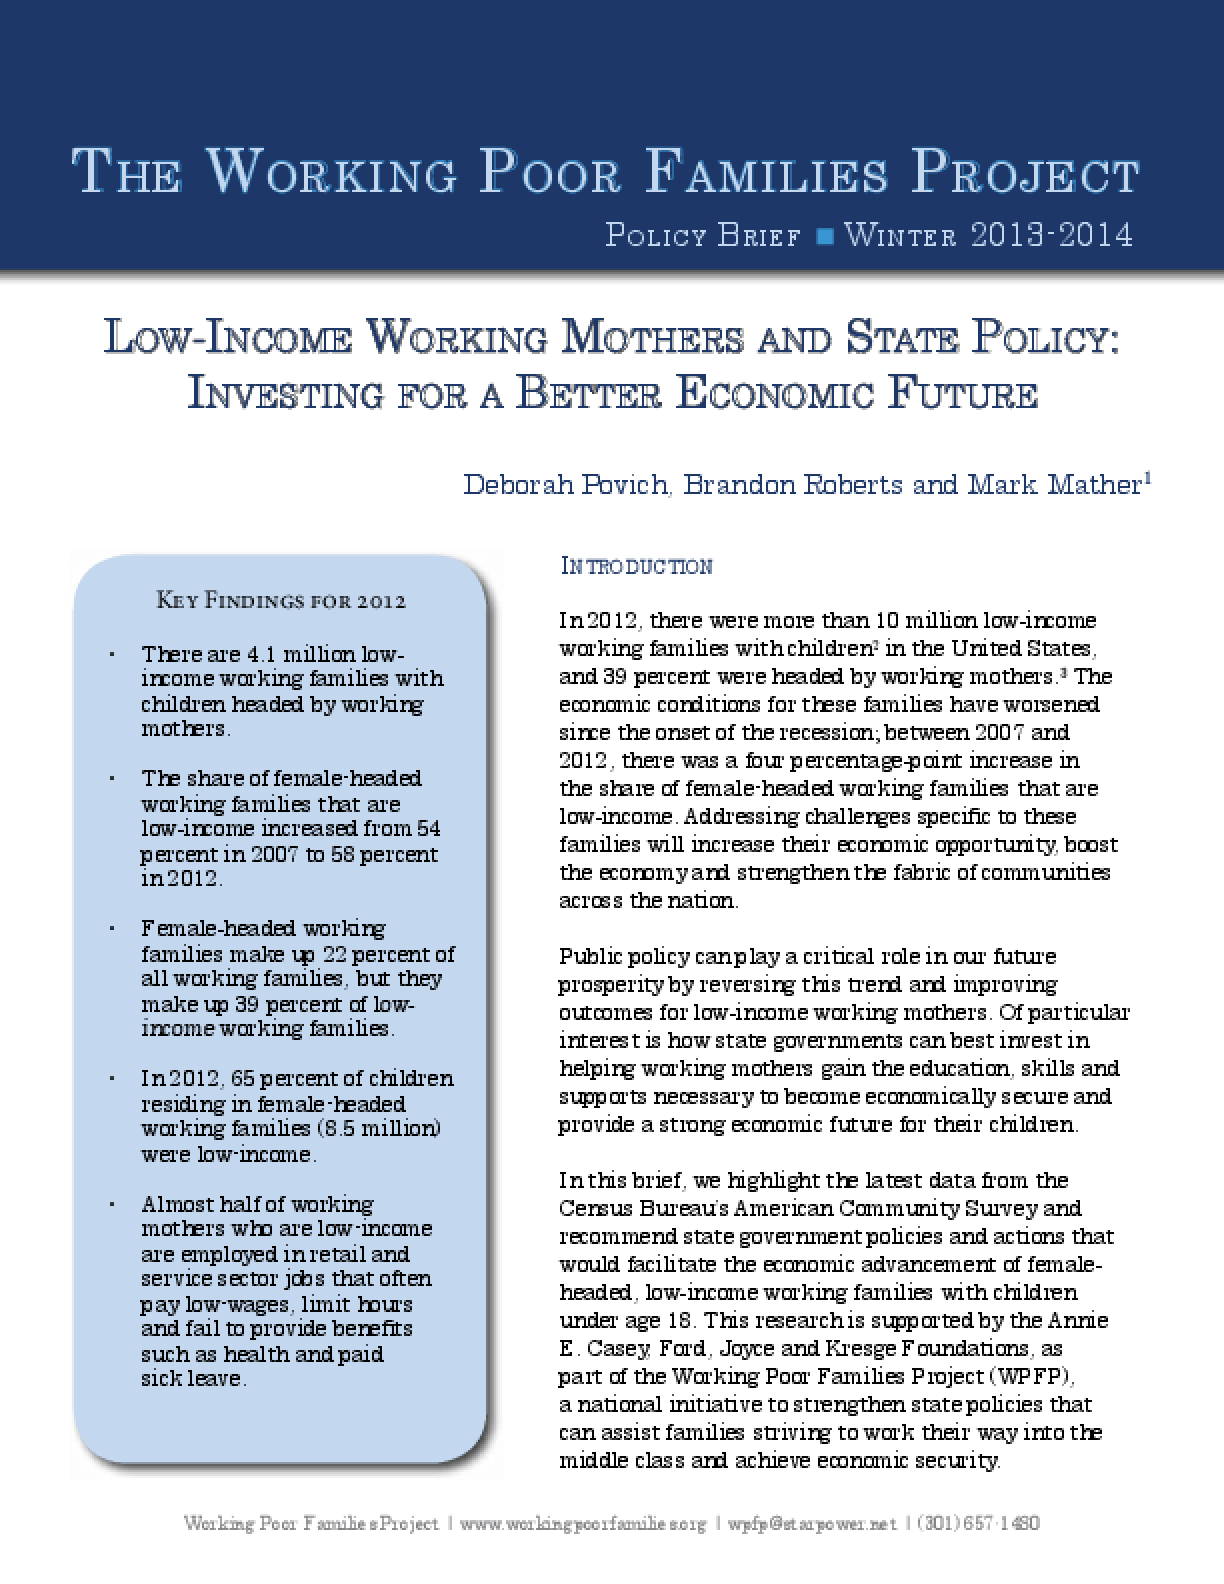 Low-Income Working Mothers and State Policy: Investing for a Better Economic Future